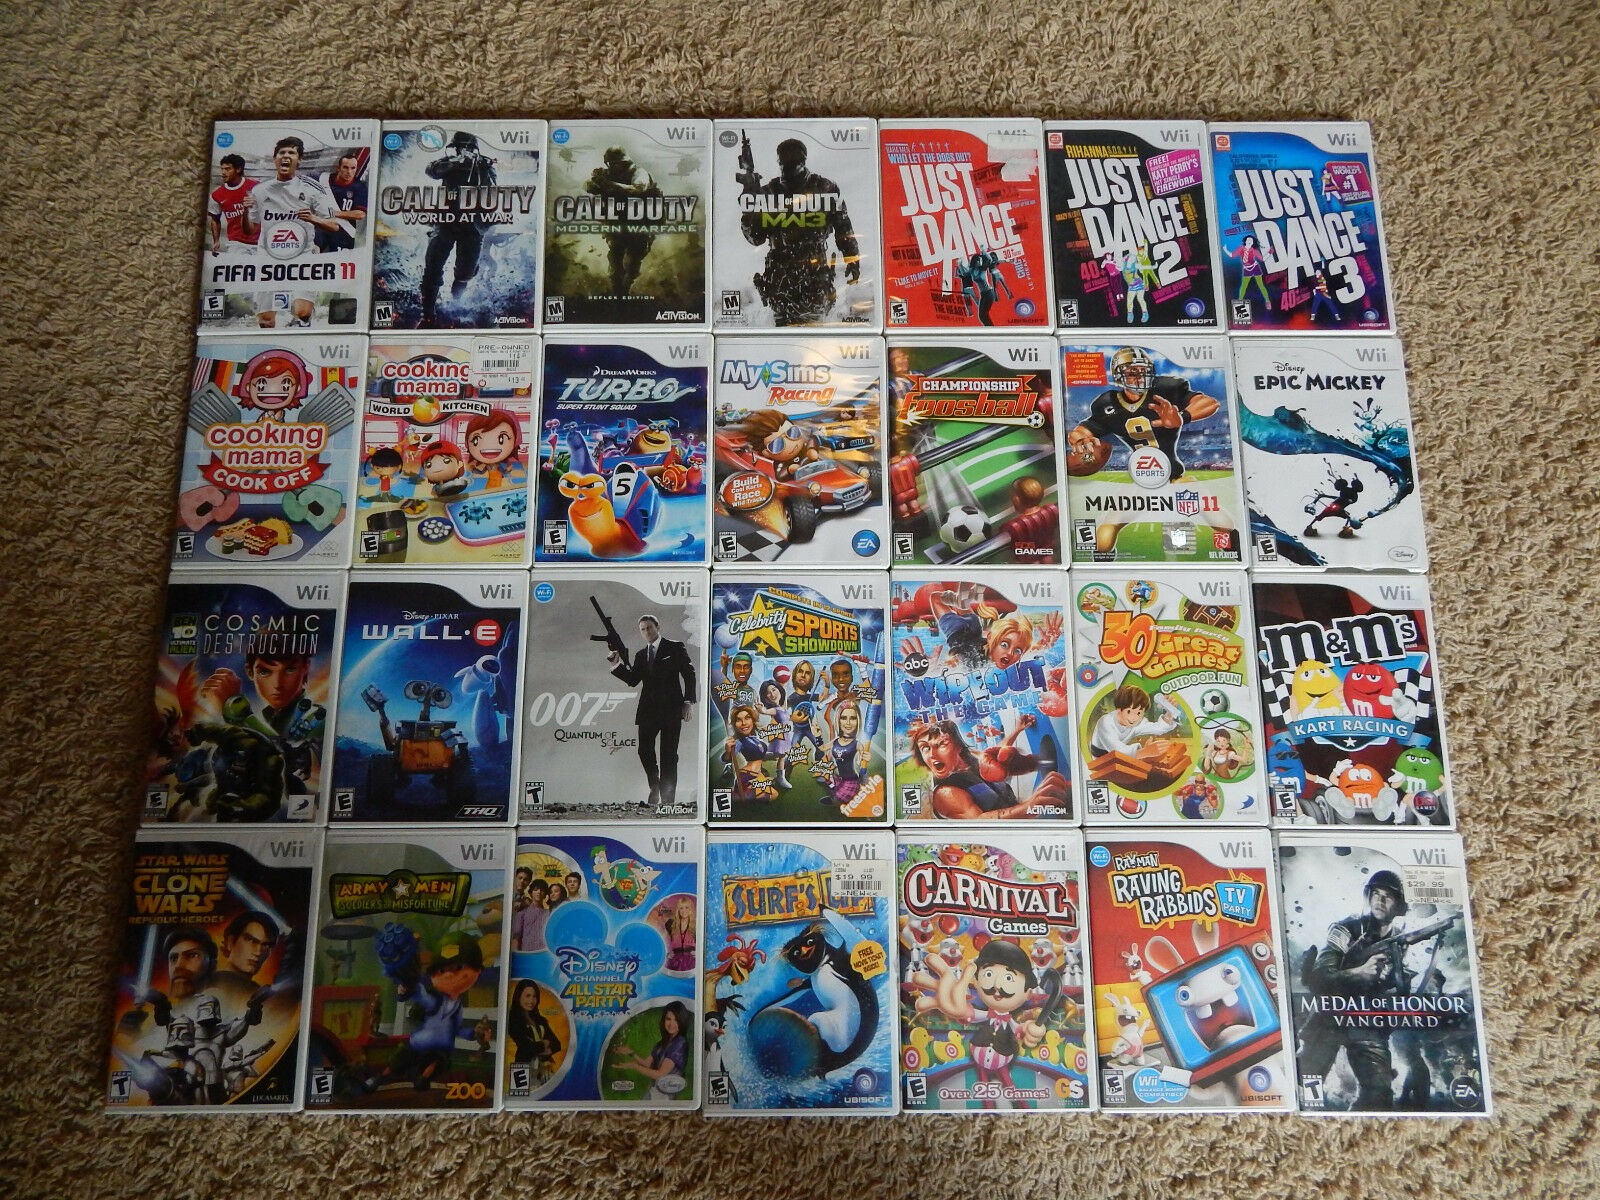 $5.95 - Nintendo Wii Games! You Choose from Large Selection!